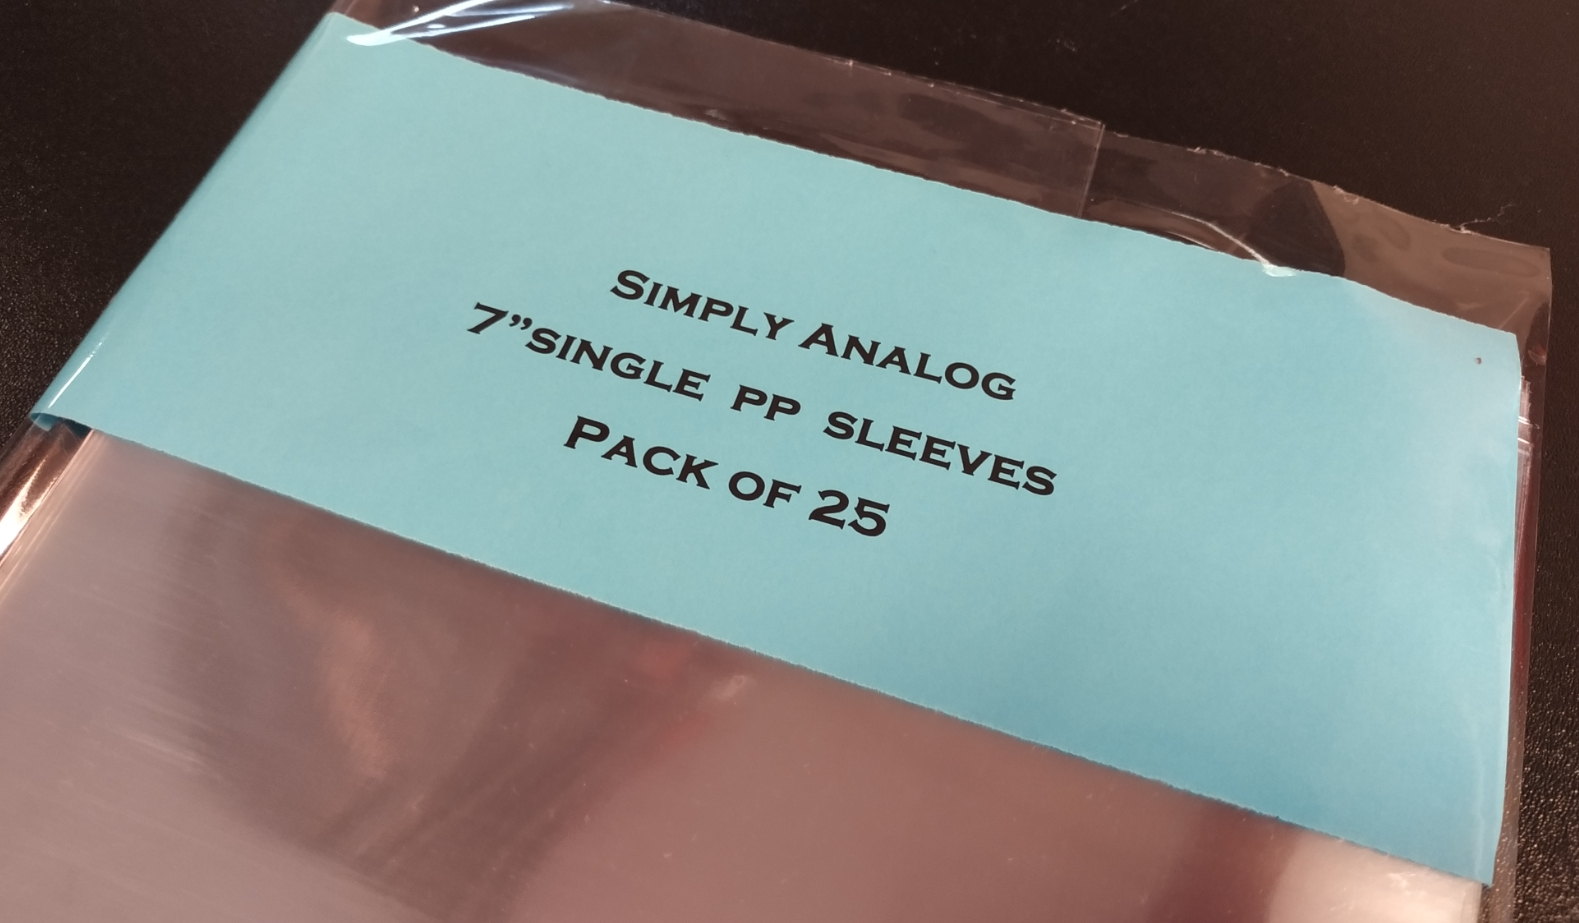 "Simply Analog - 7"" SINGLE PP SLEEVES"